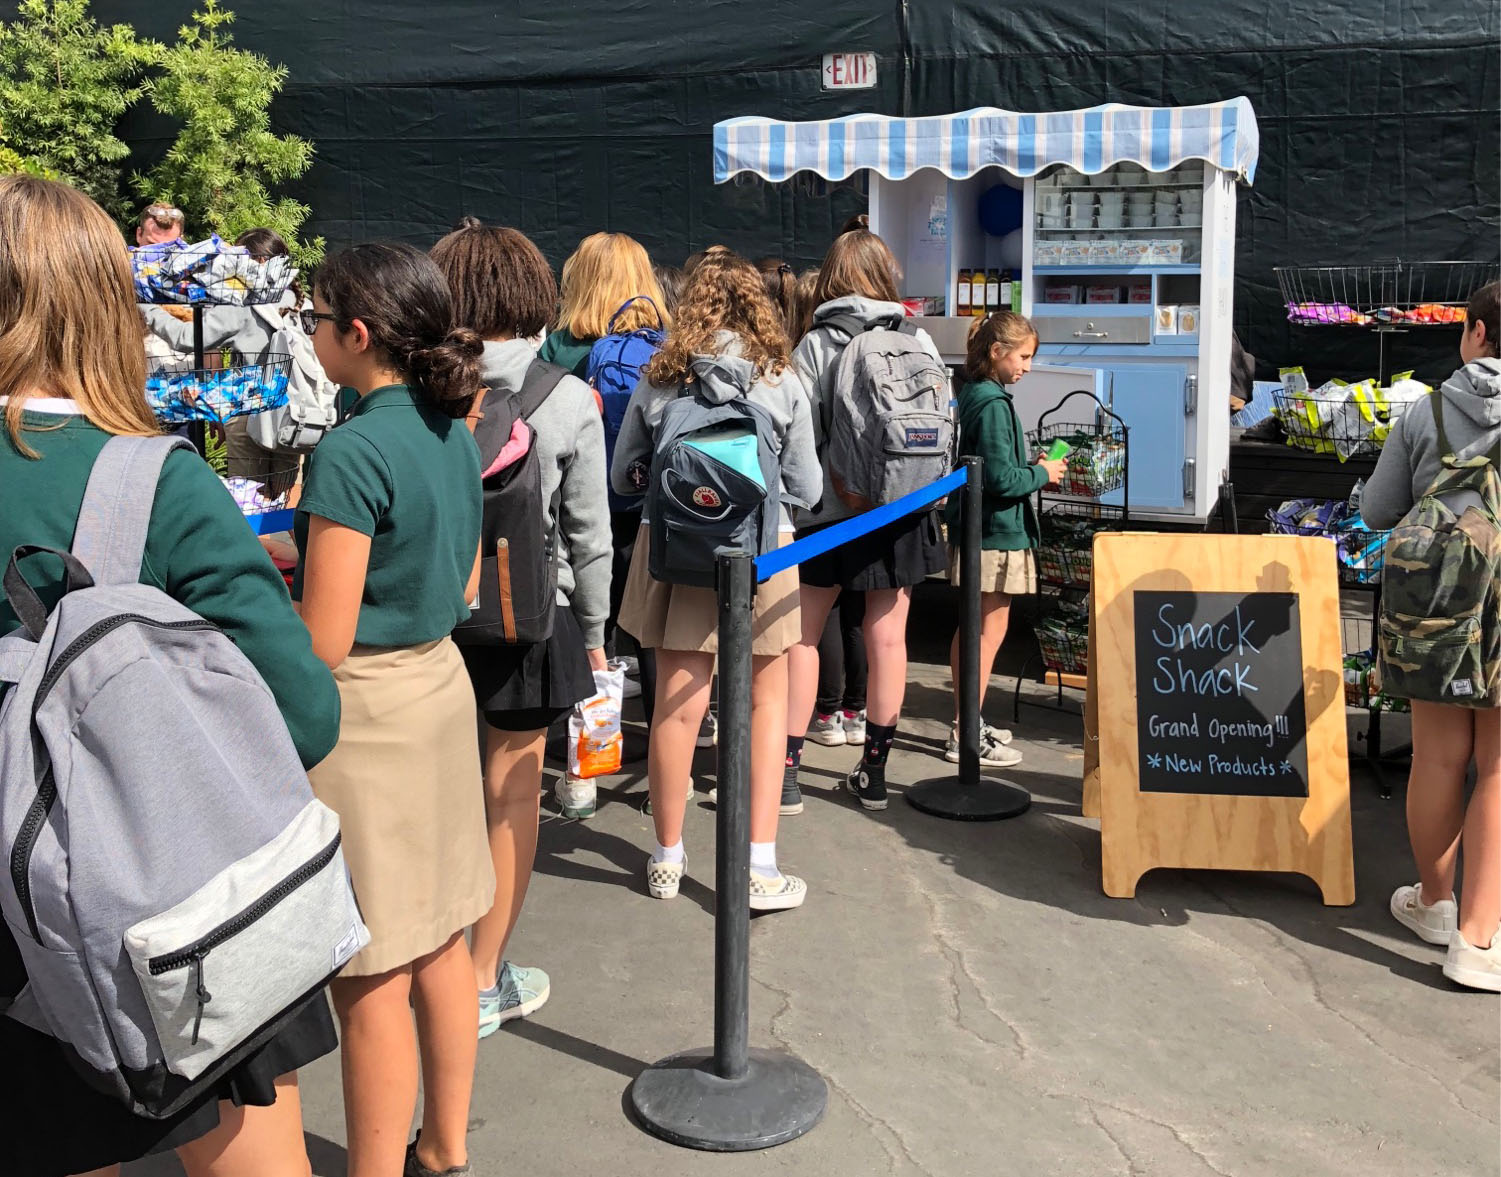 Students line up to purchase snacks at the Snack Shack's opening.